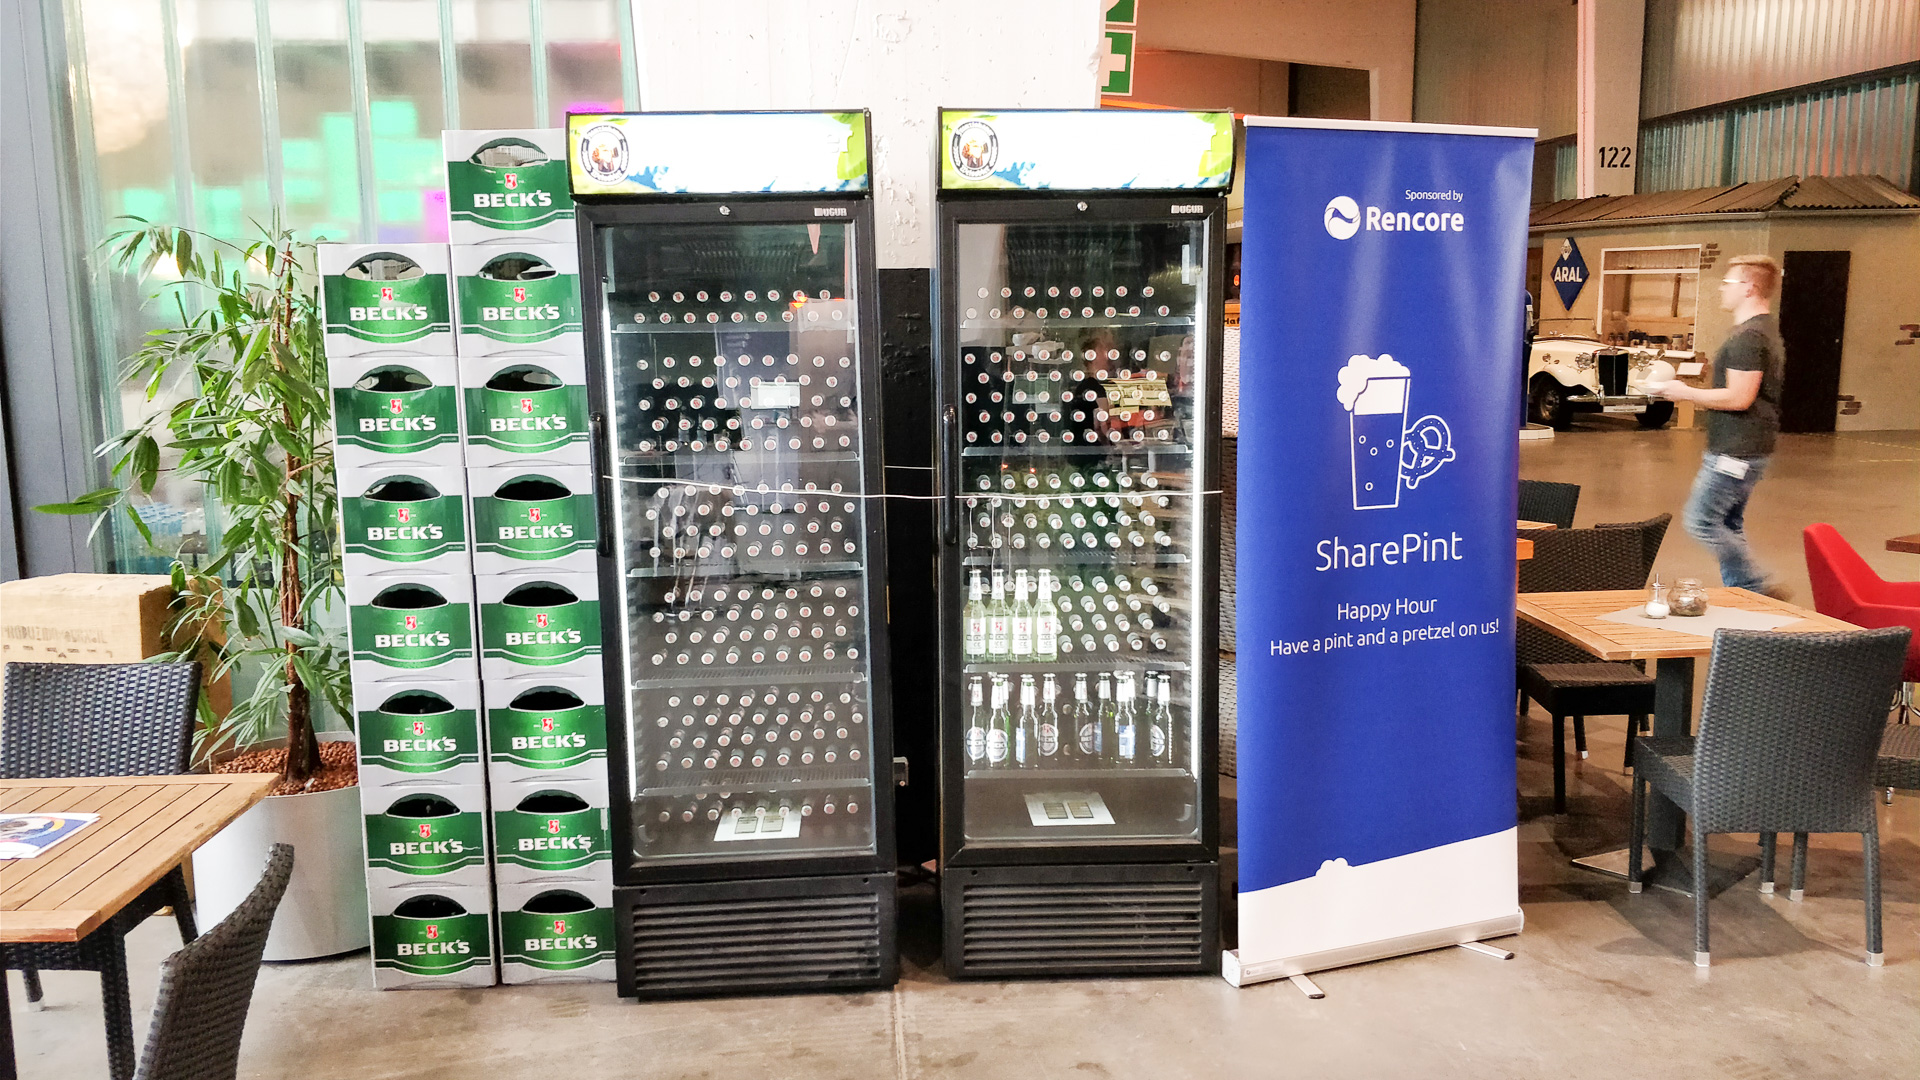 SharePint sponsored by Rencore